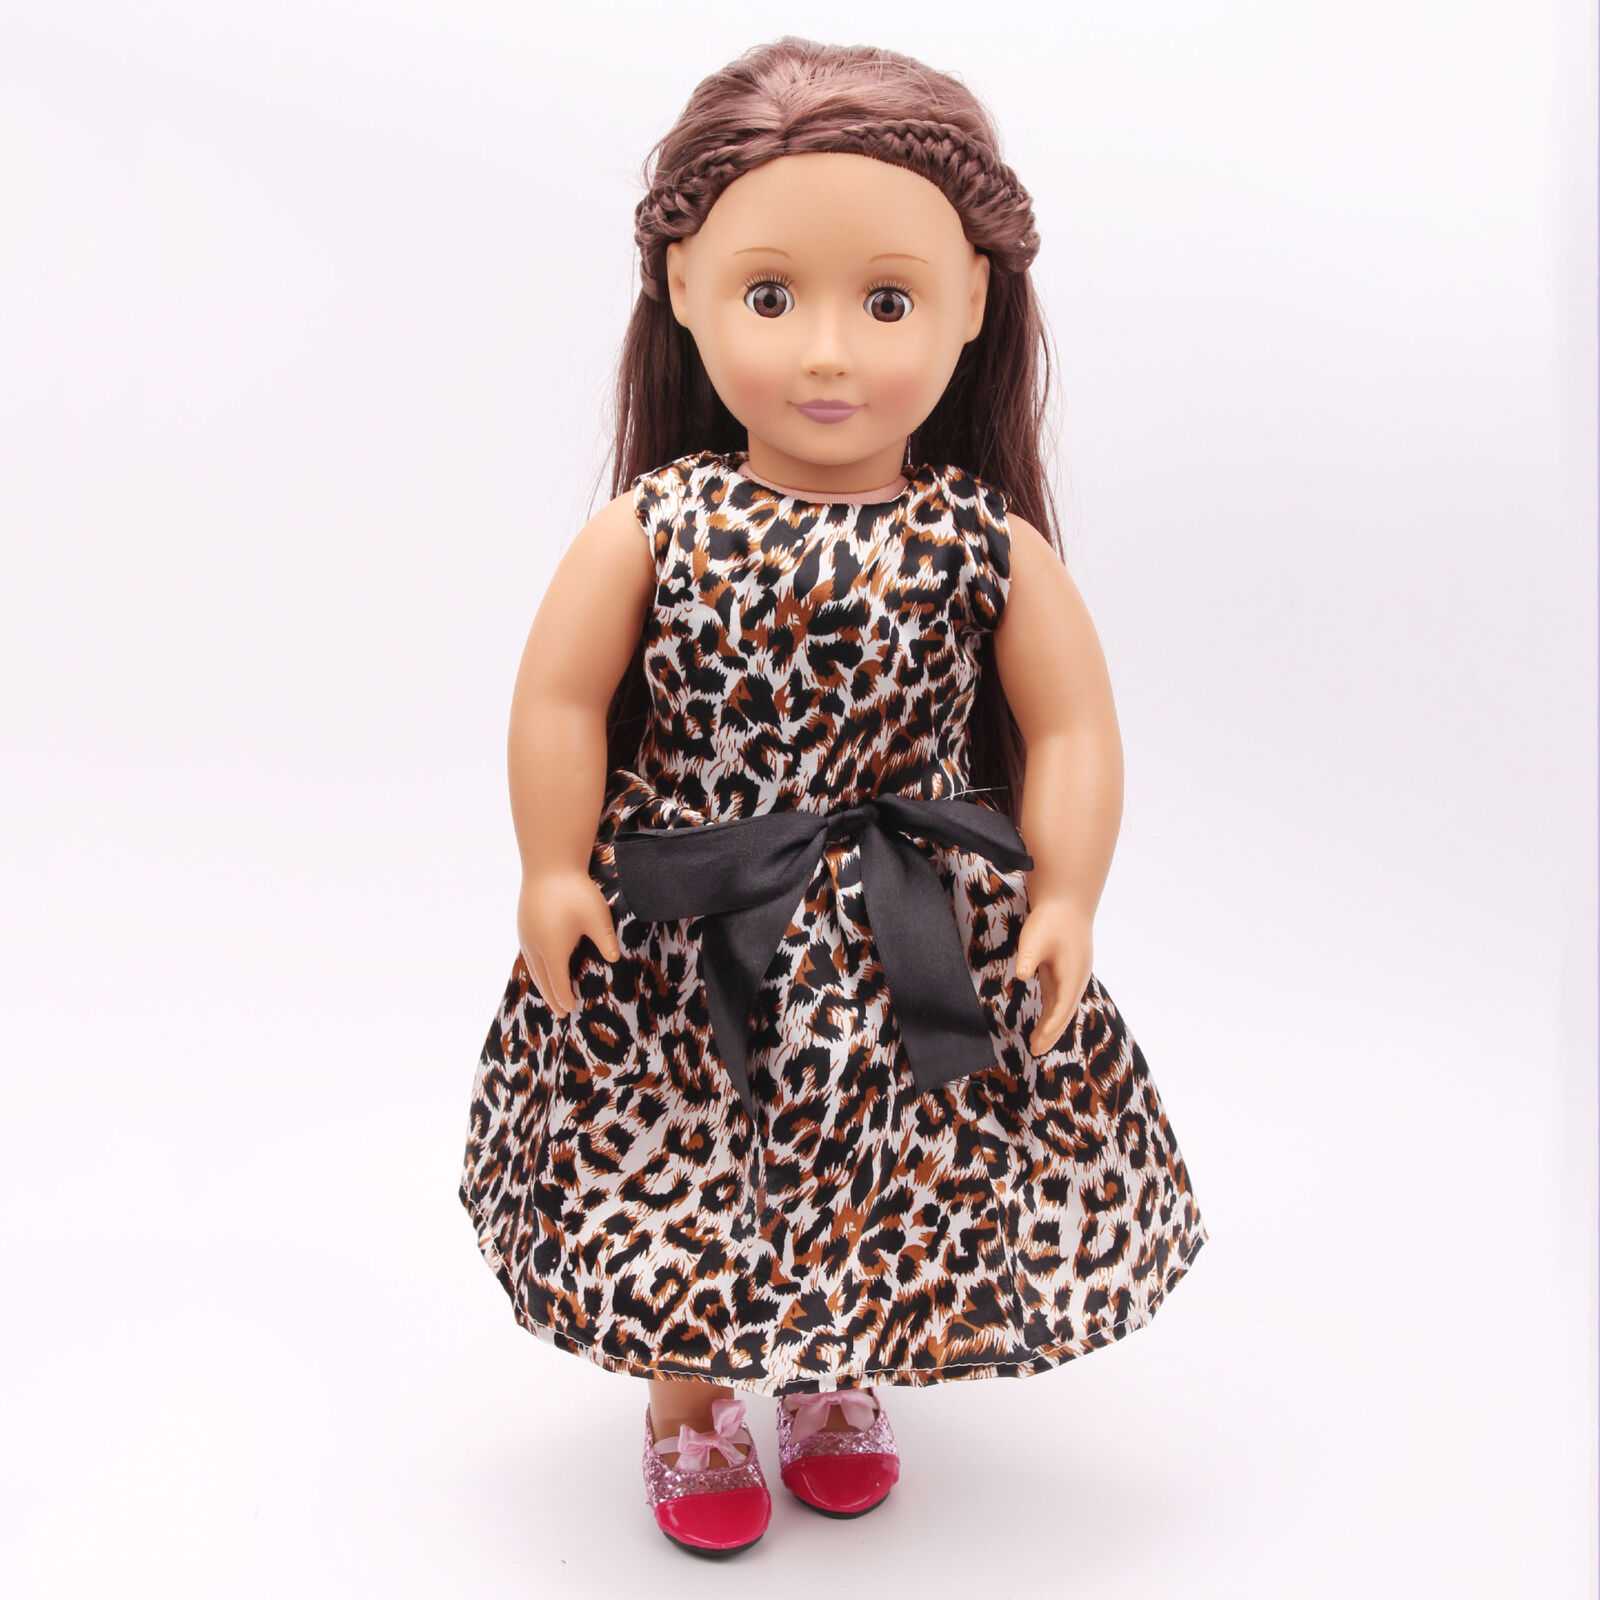 US Stock Doll Clothes Dress Outfits Pajames For 18 inch Xmas Gift Dress Shoes P16 Leopard Dress